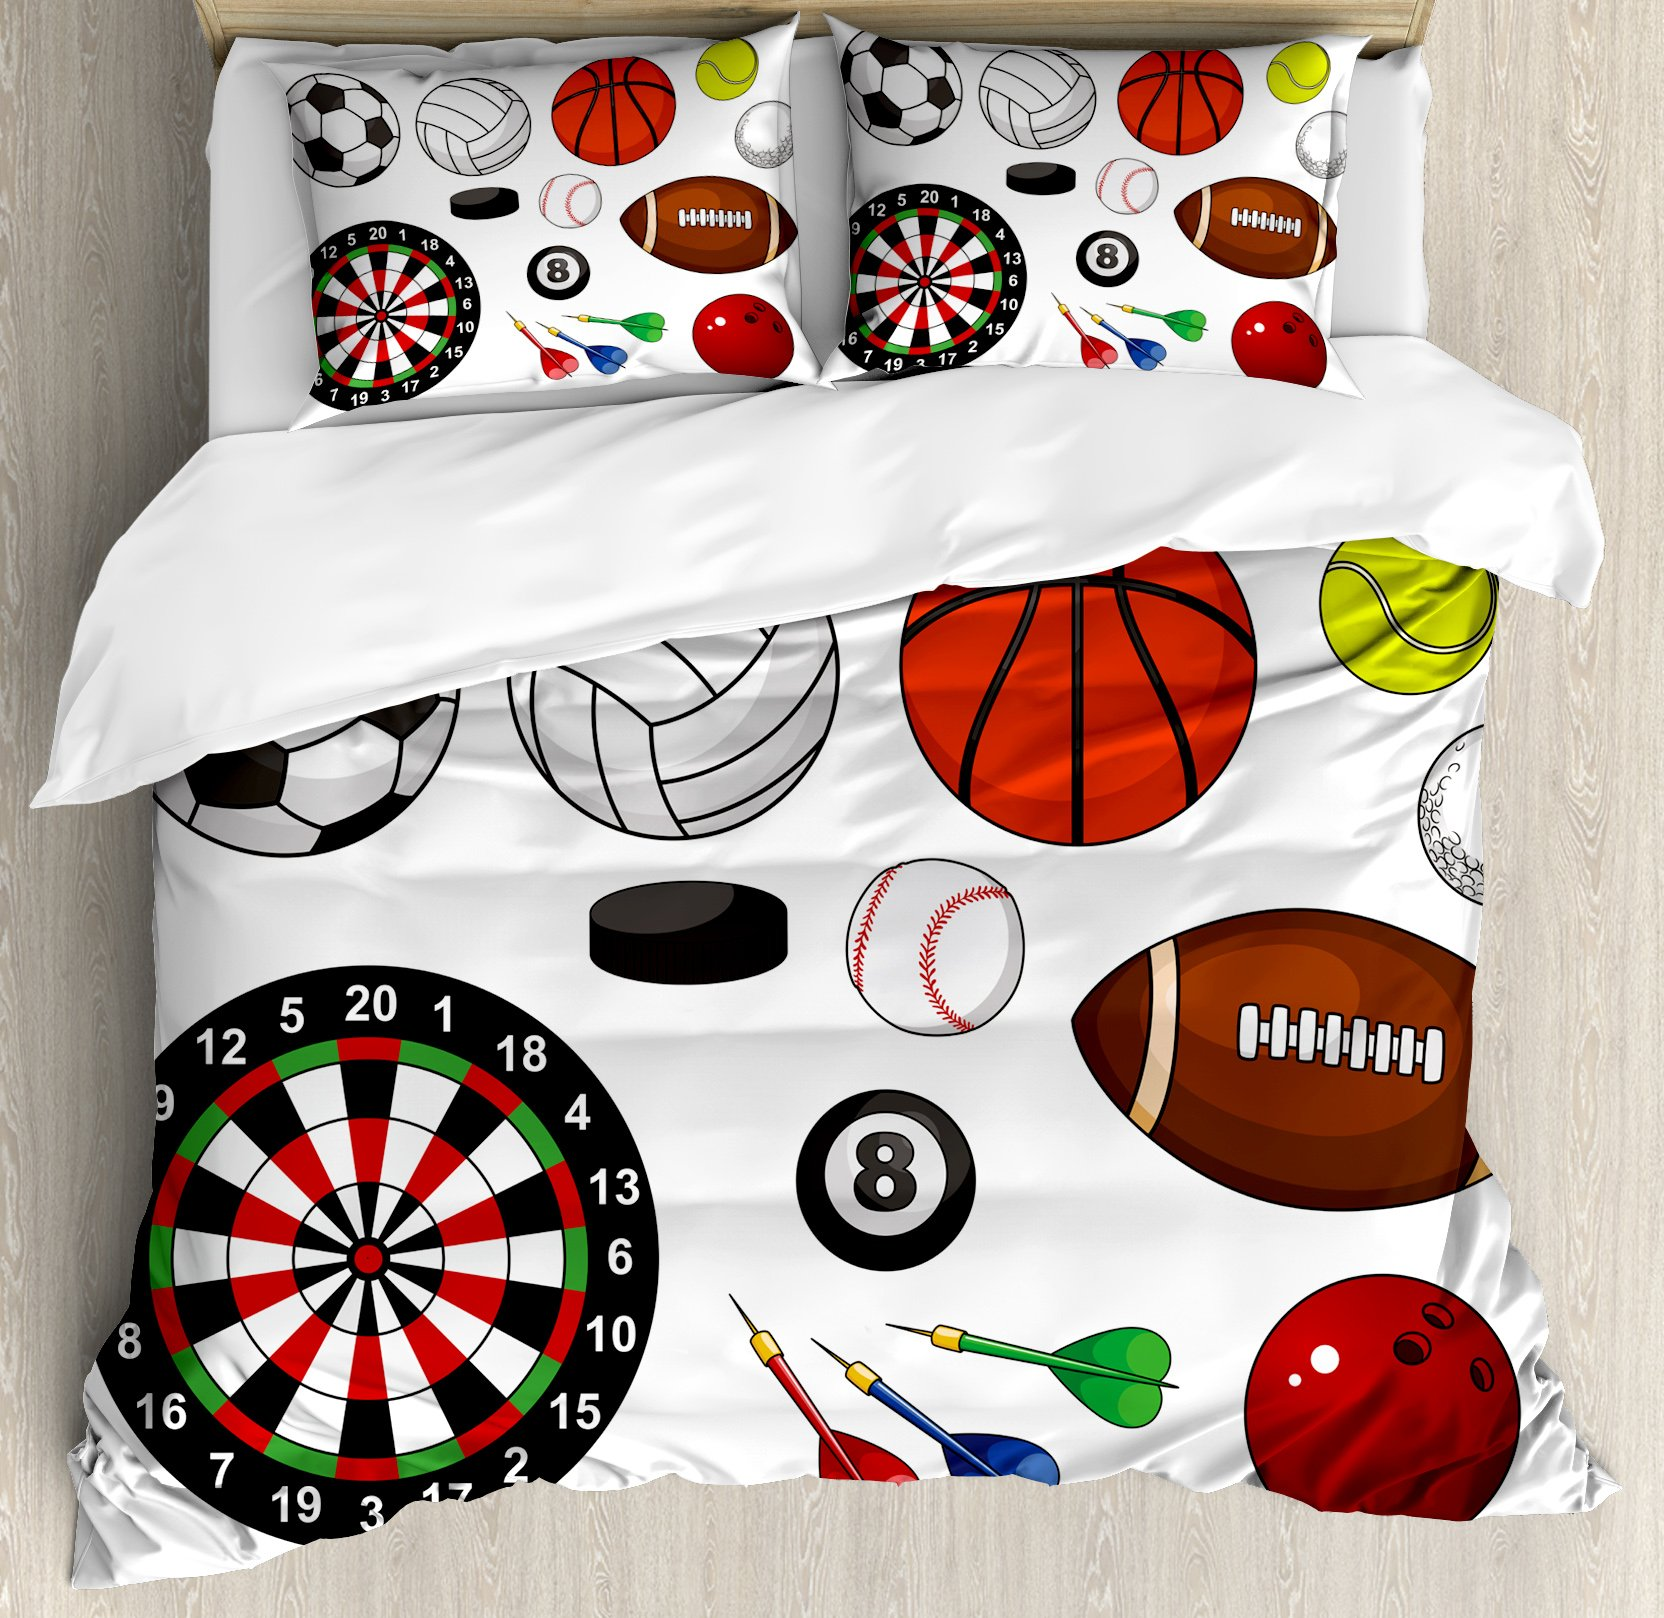 Boy's Room Duvet Cover Set King Size by Lunarable, Variety of Sports Icons Different Games Balls Dartboard Hockey Puck and Pins, Decorative 3 Piece Bedding Set with 2 Pillow Shams, Multicolor